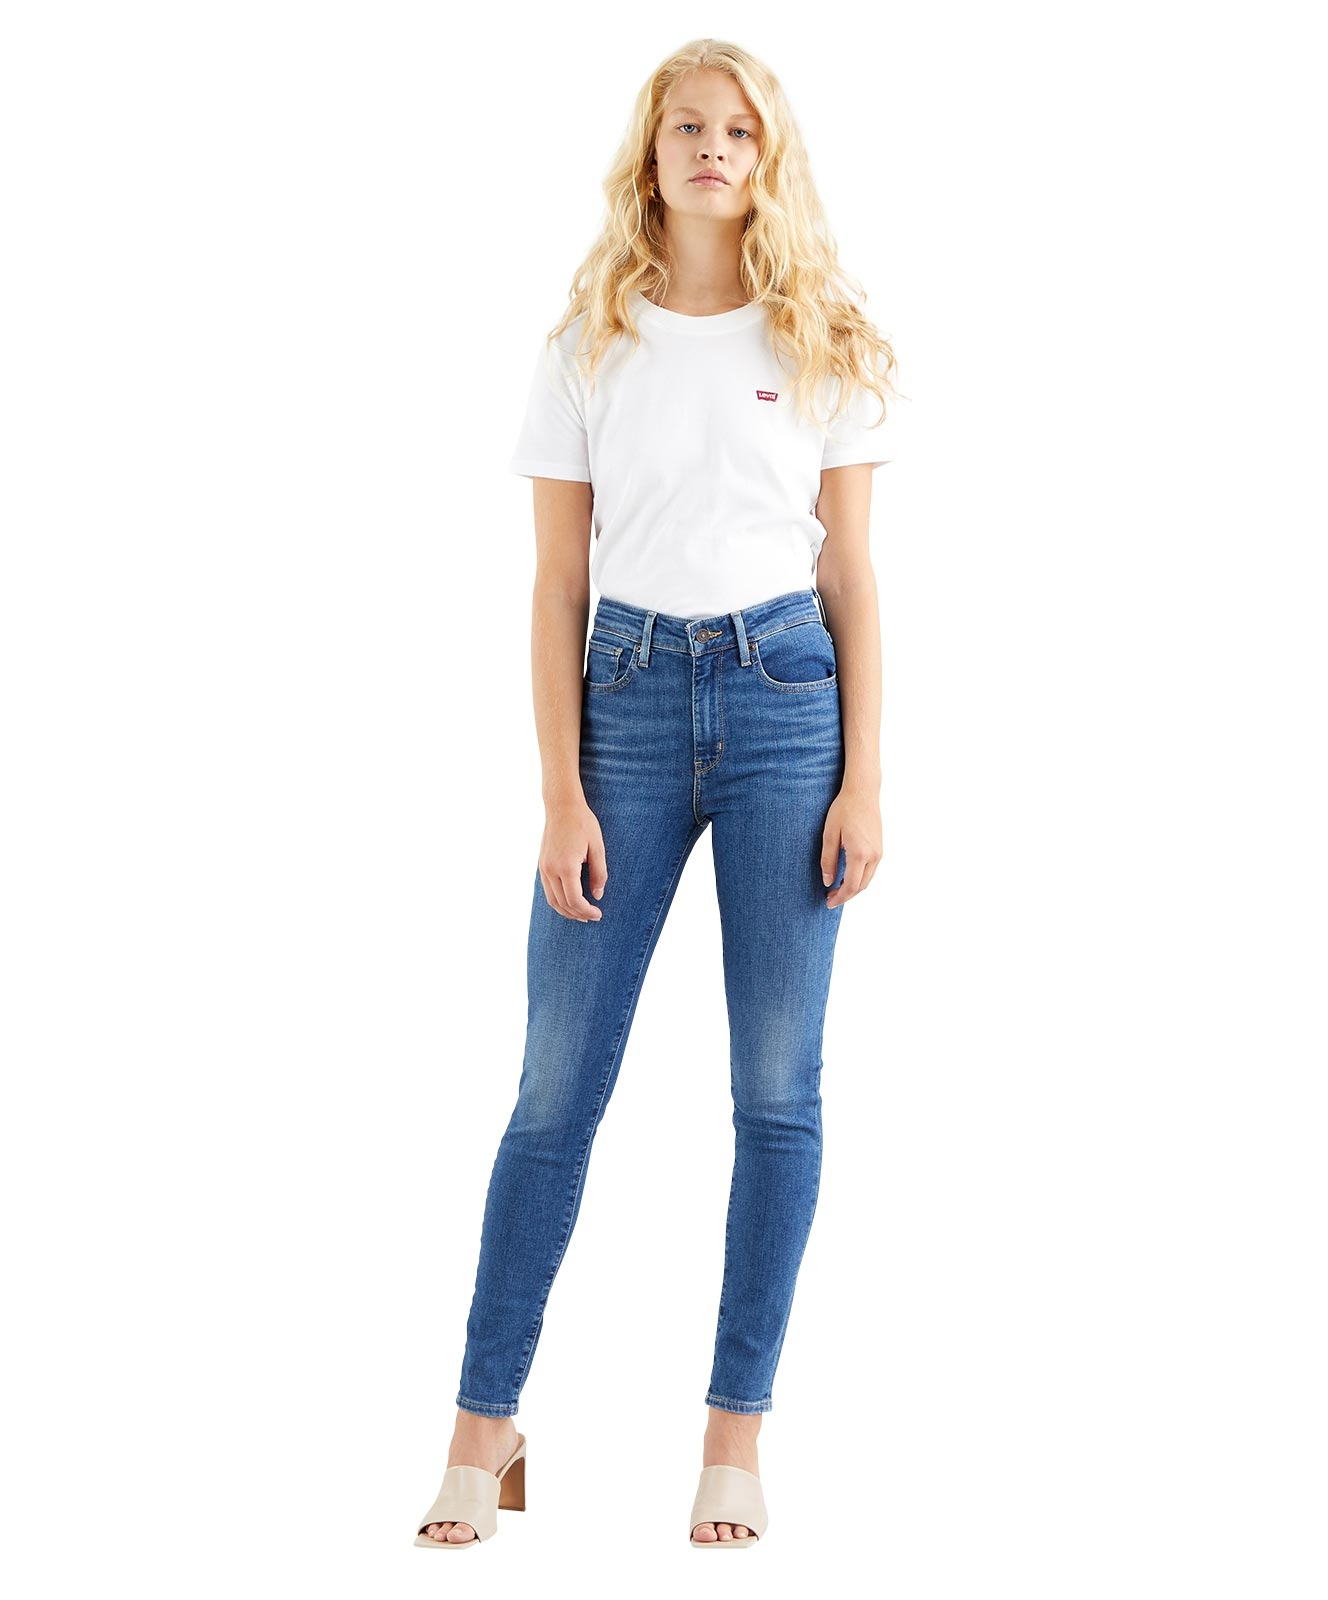 Hosen - Levis High Waisted Jeans 721 High Rise Skinny in Good Afternoon  - Onlineshop Jeans Meile